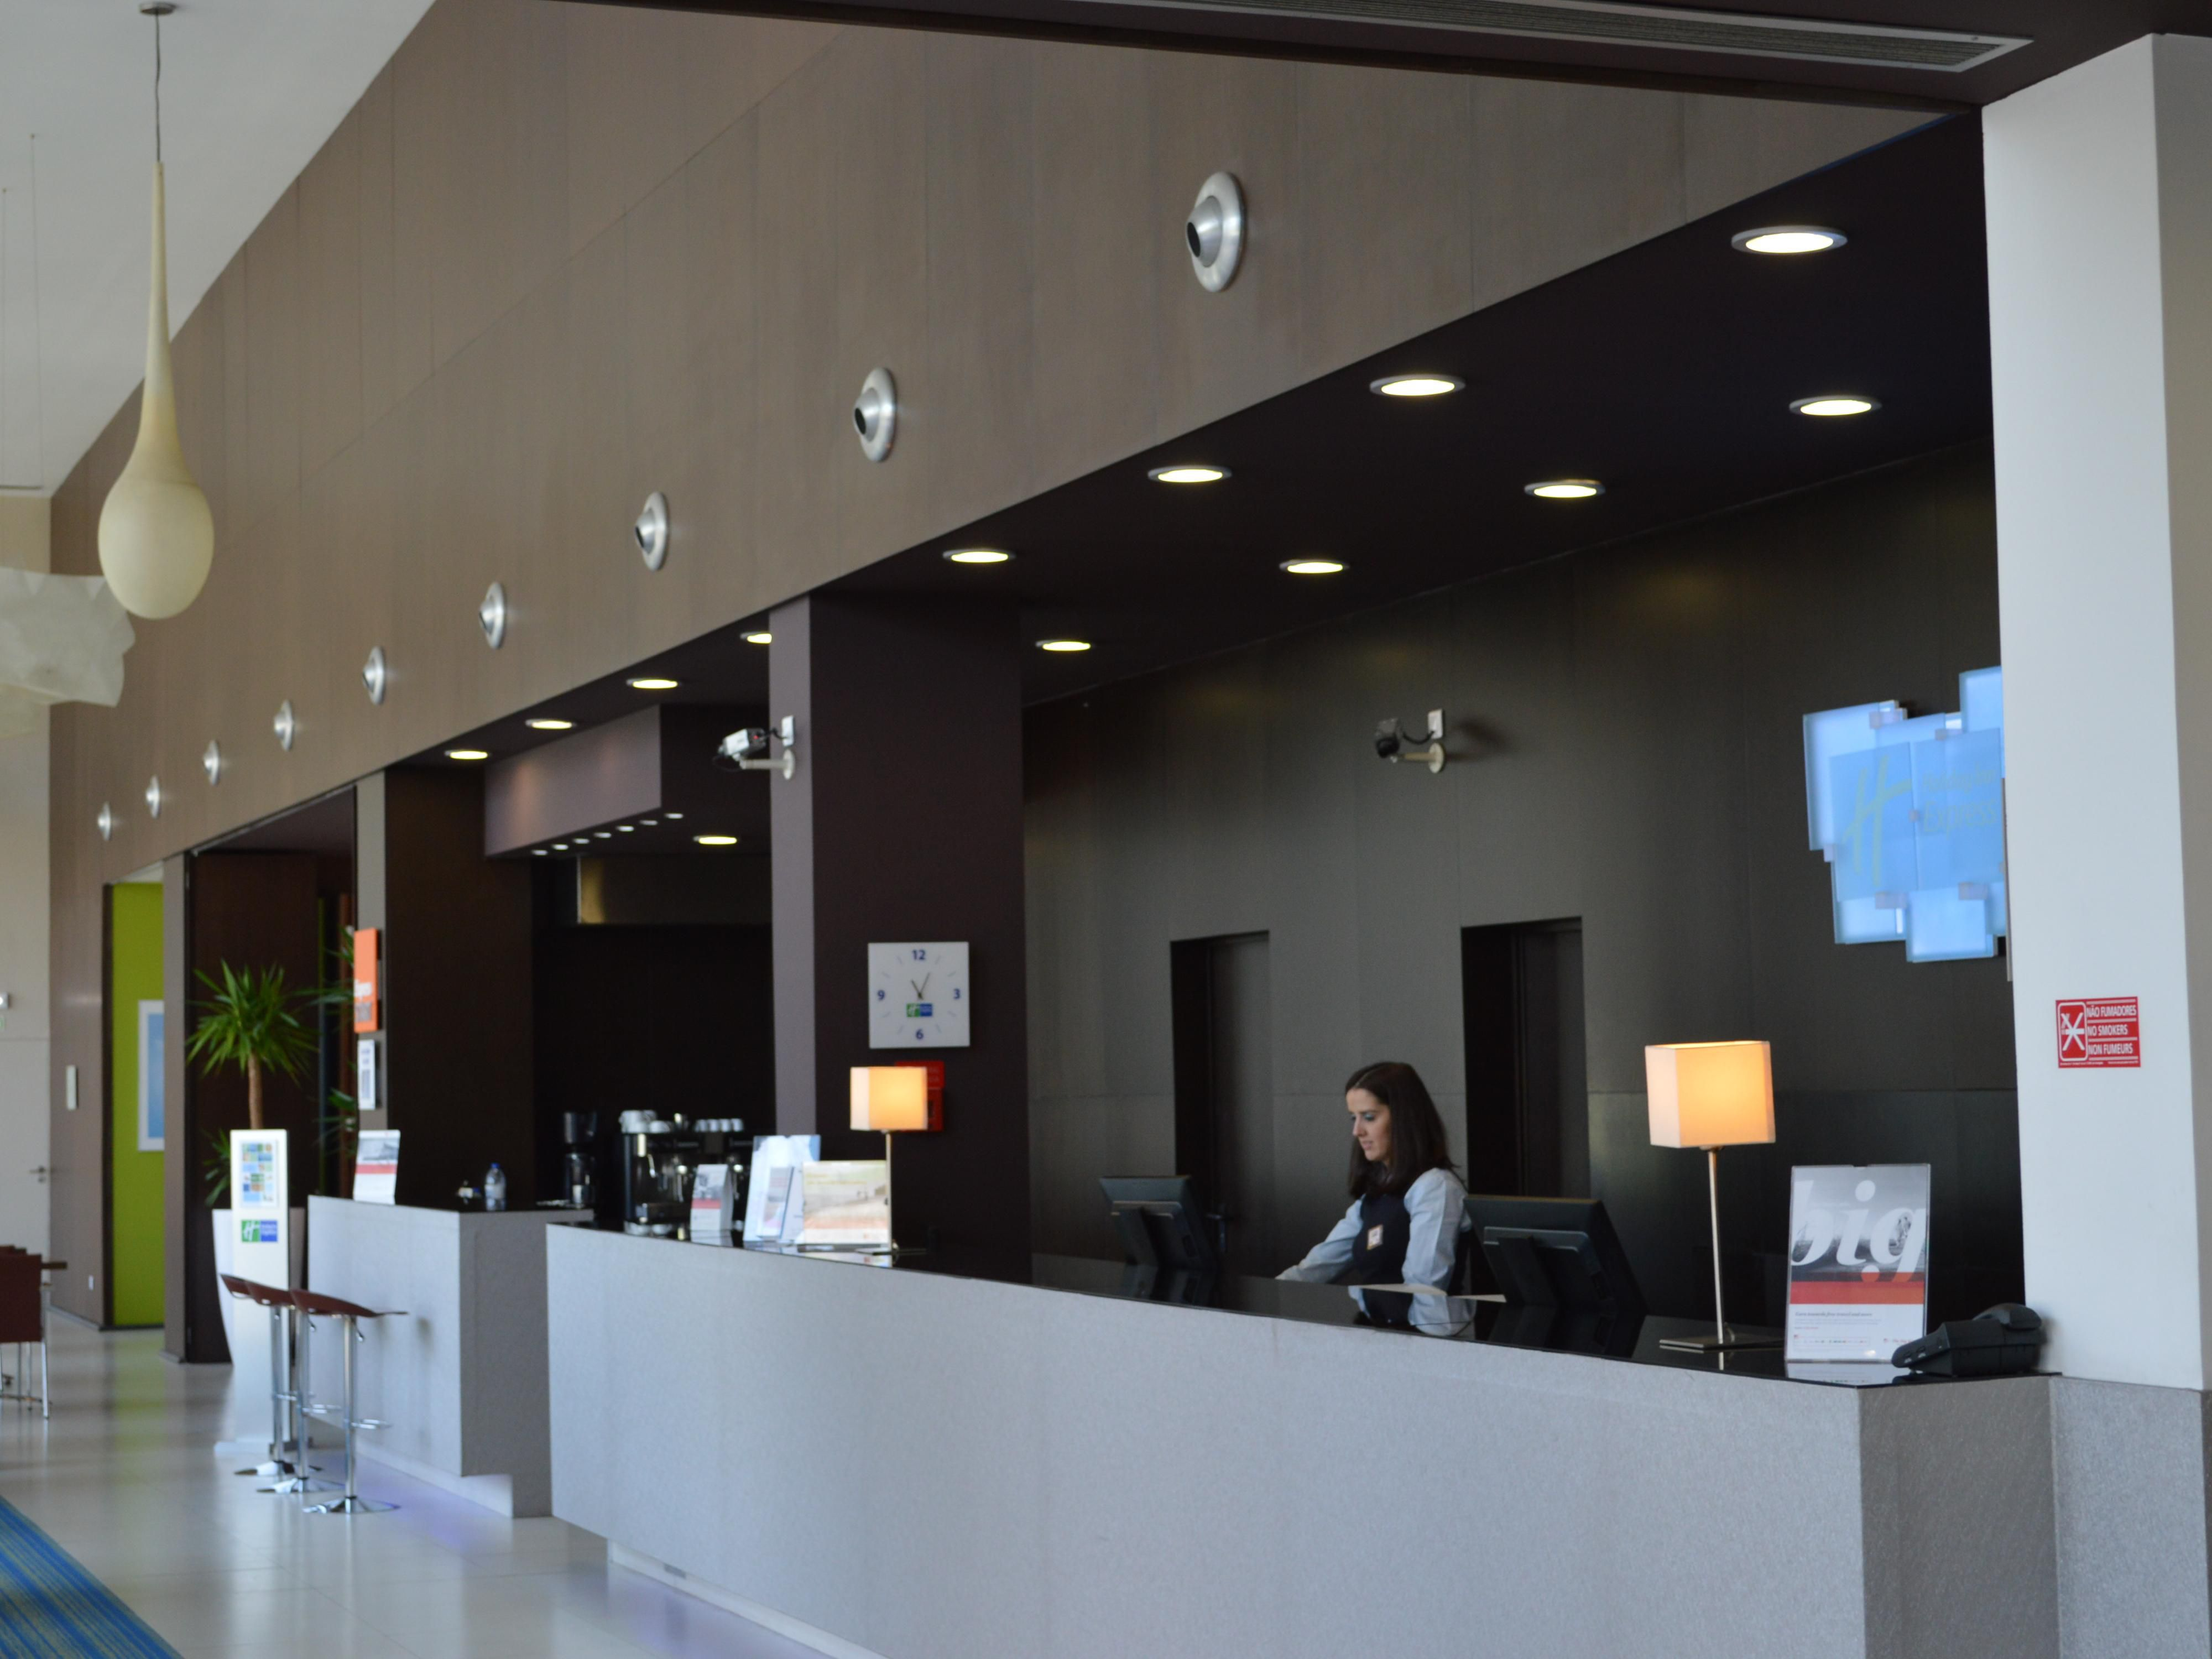 Enjoy our lobby where you can find the reception and bar